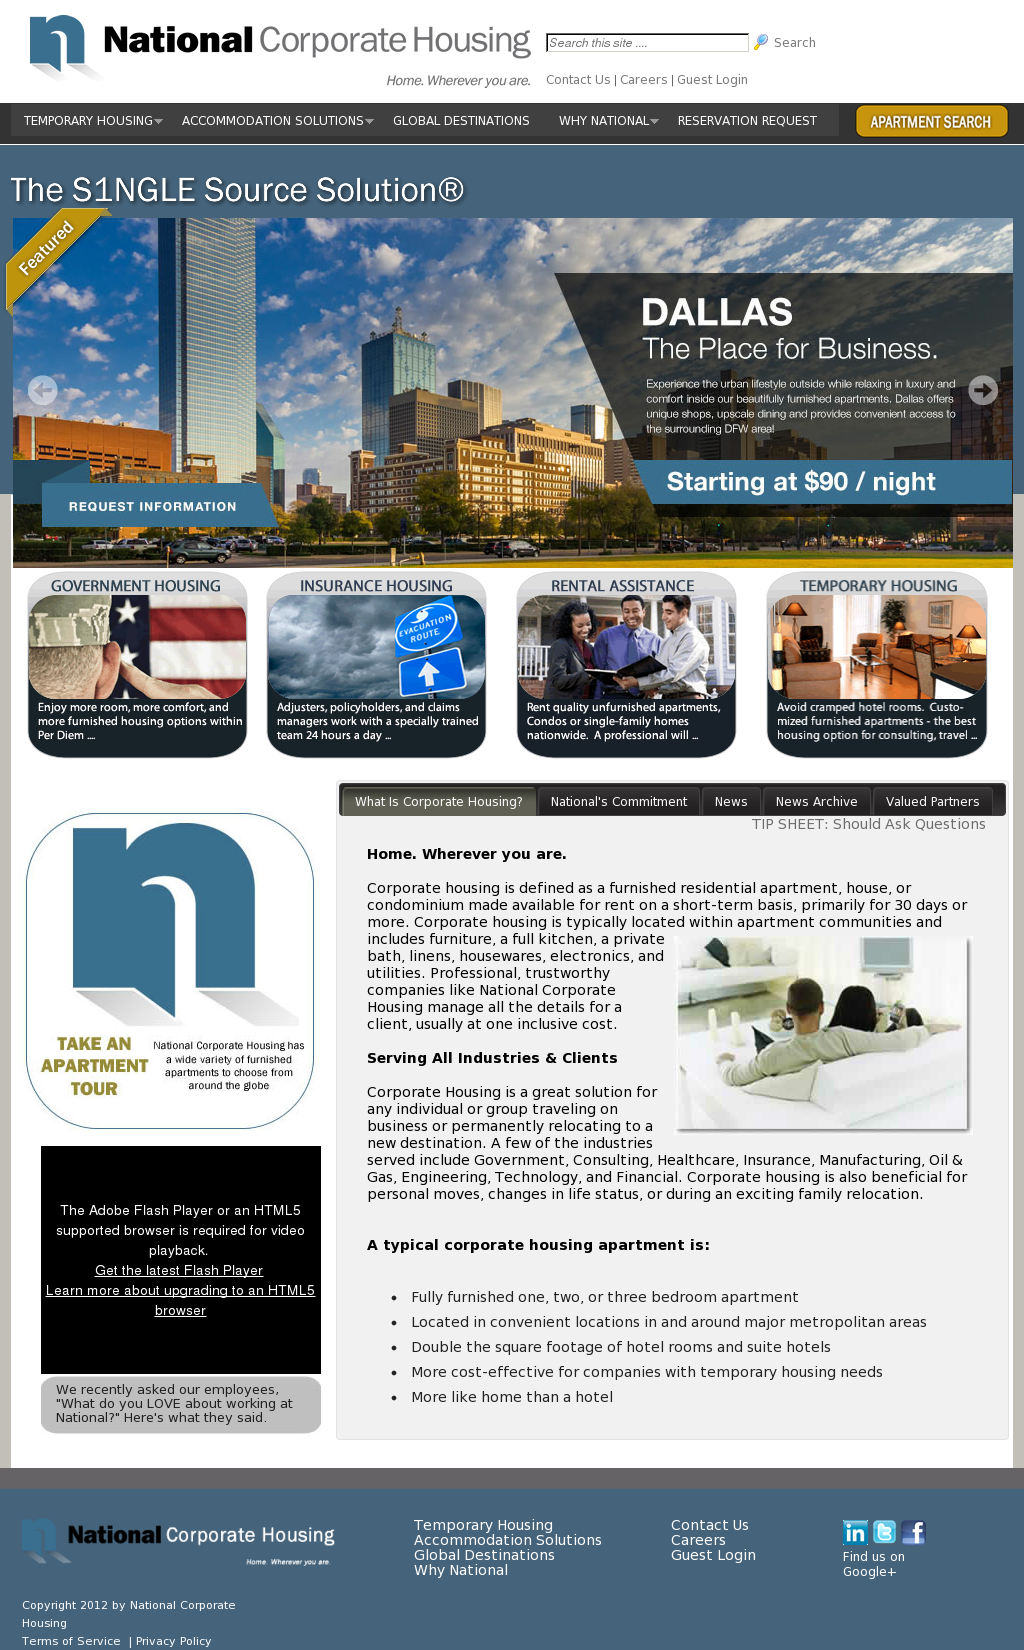 National Corporate Housing Competitors, Revenue and